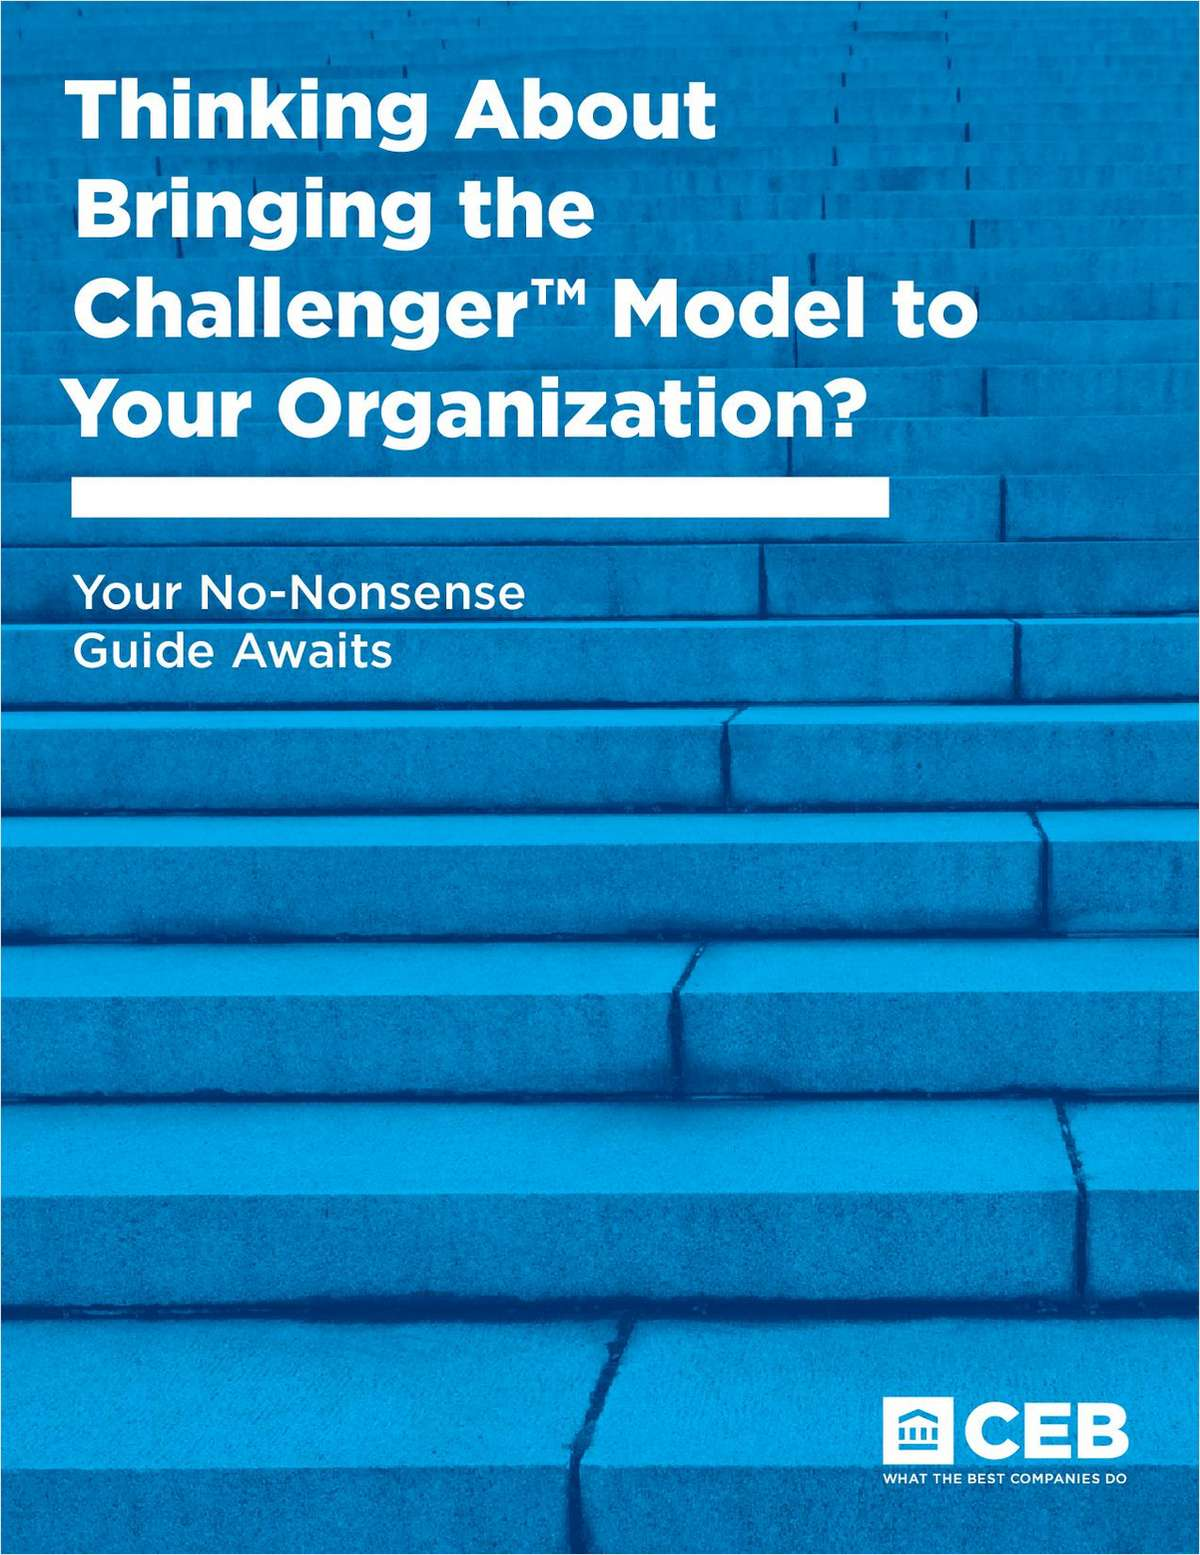 Thinking about bringing the Challenger™ Model to your organization? Your no nonsense guide awaits.